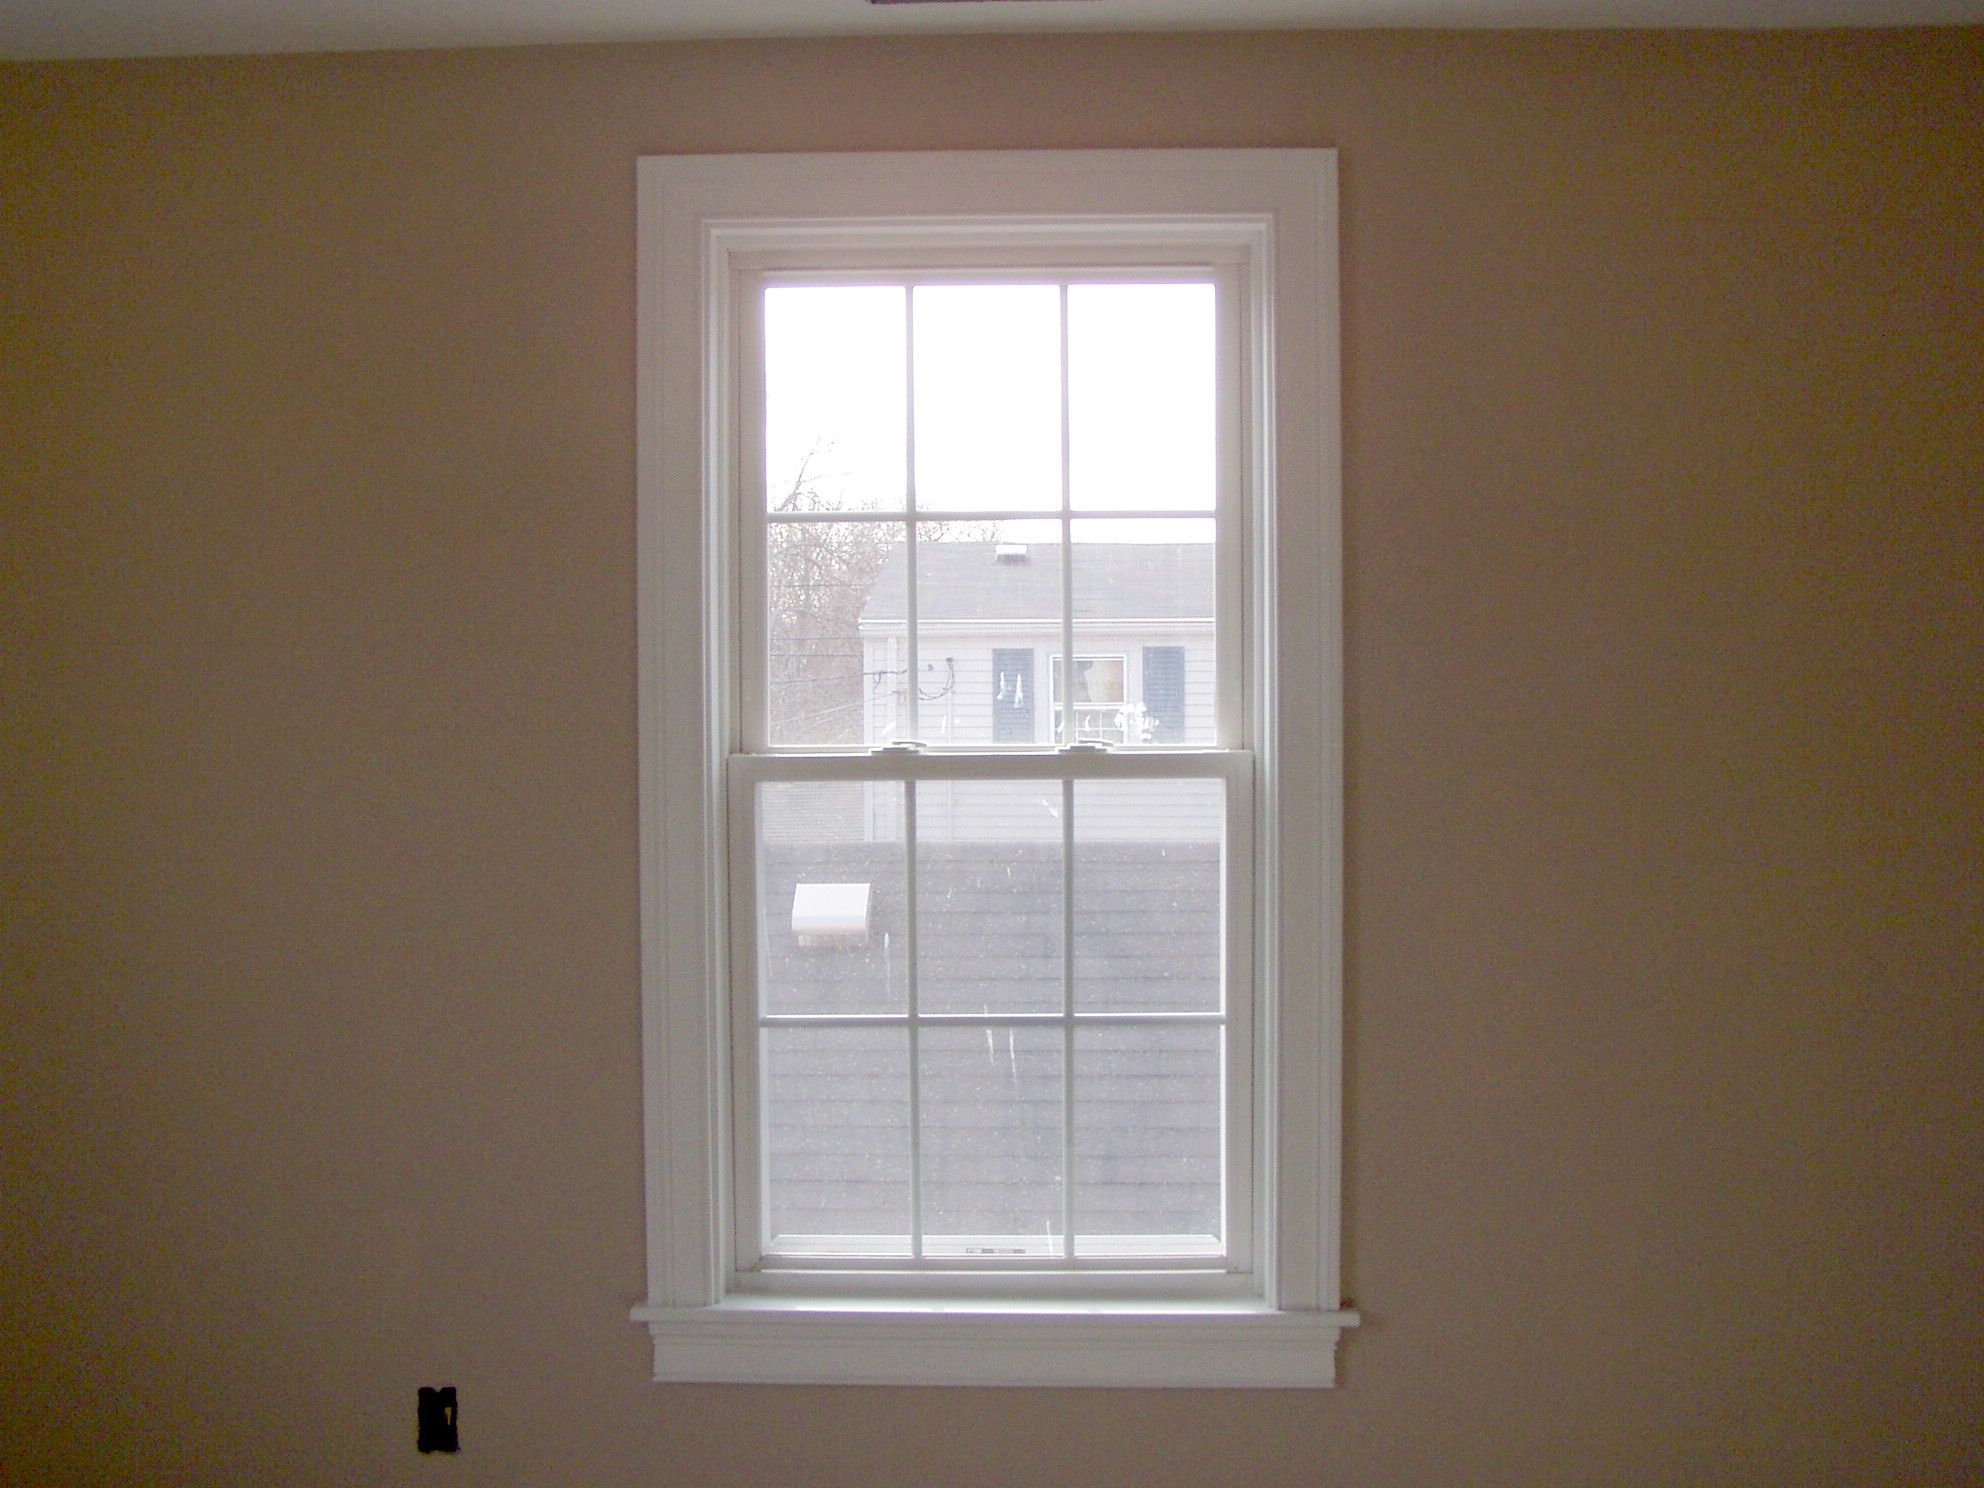 How to choose the best exterior window trim for your home window trim ideas